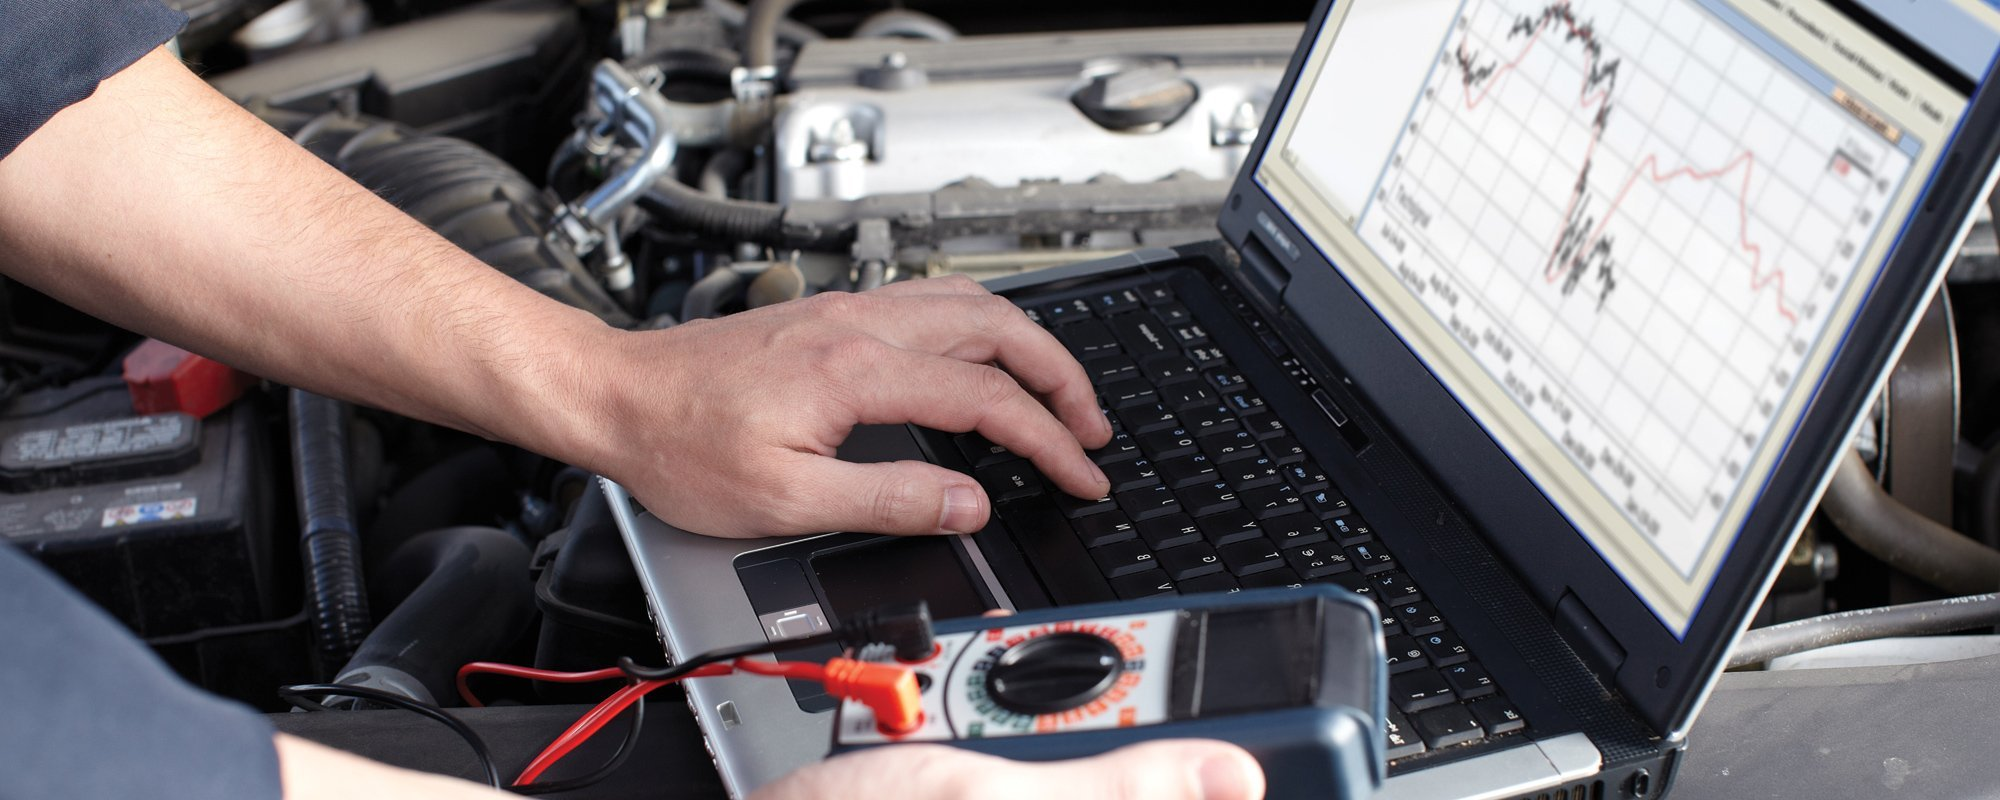 Diagnosing teh car withthe help of laptop